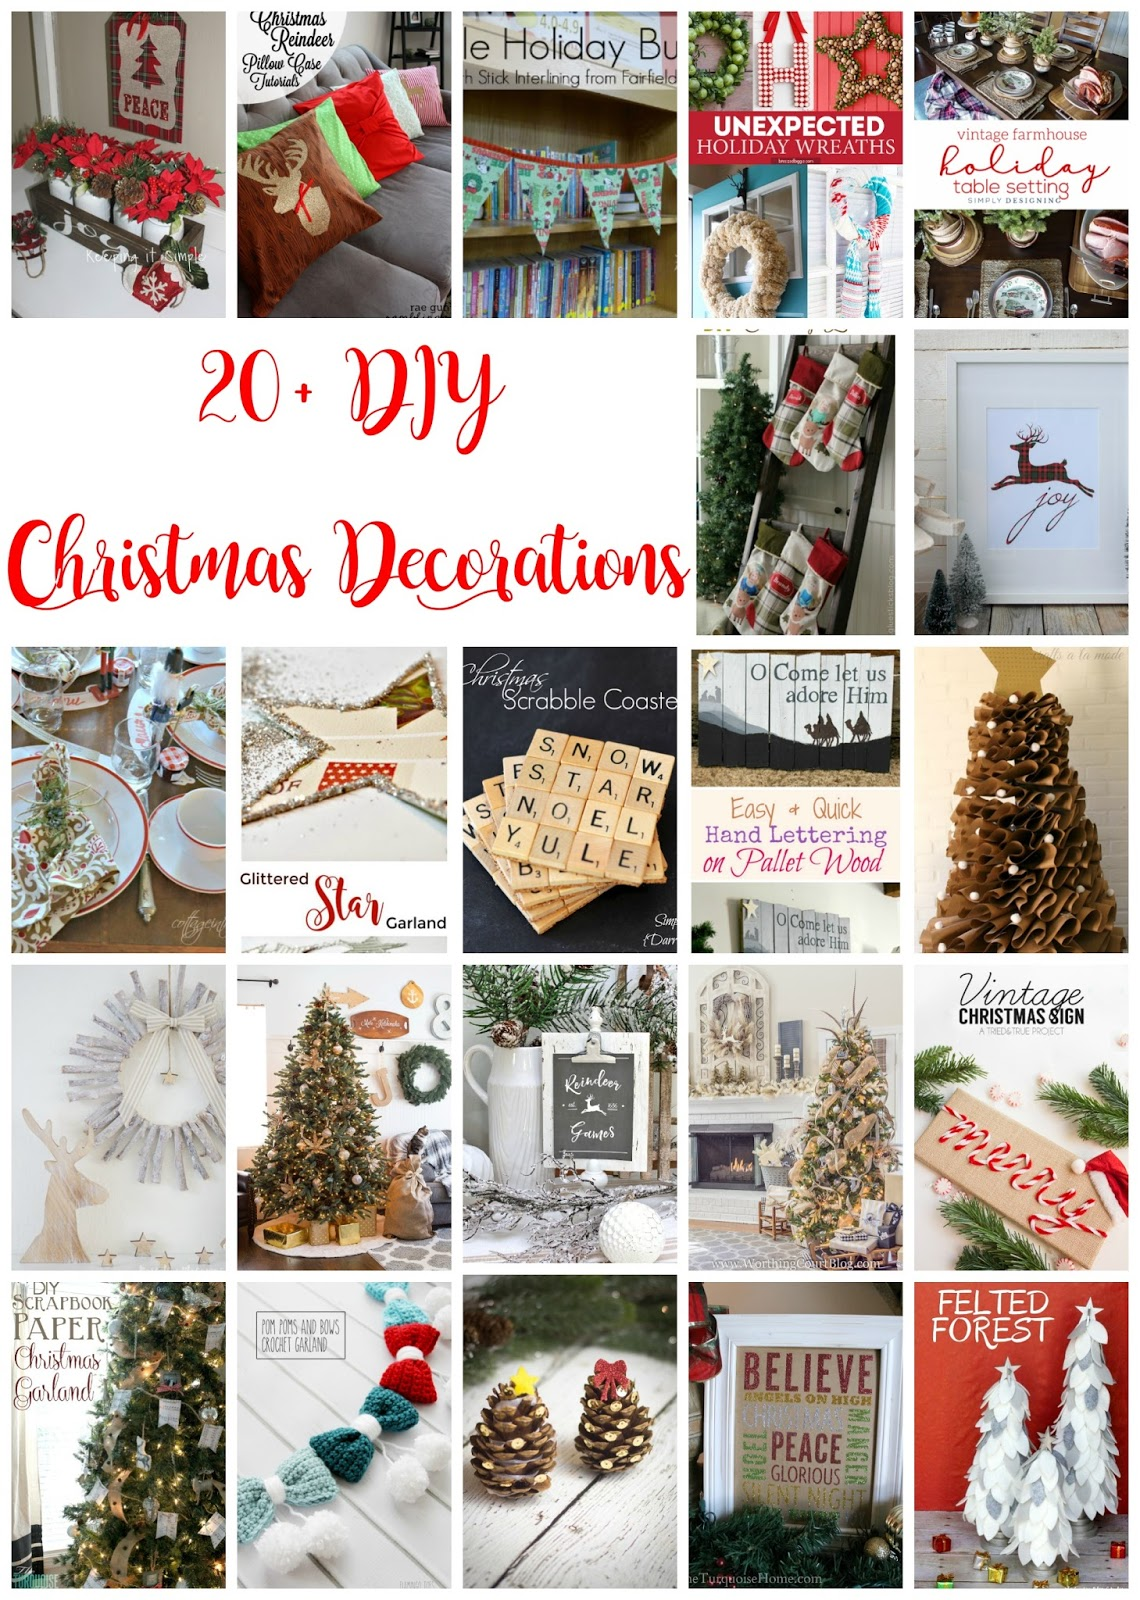 20+ DIY Christmas Decoration Ideas